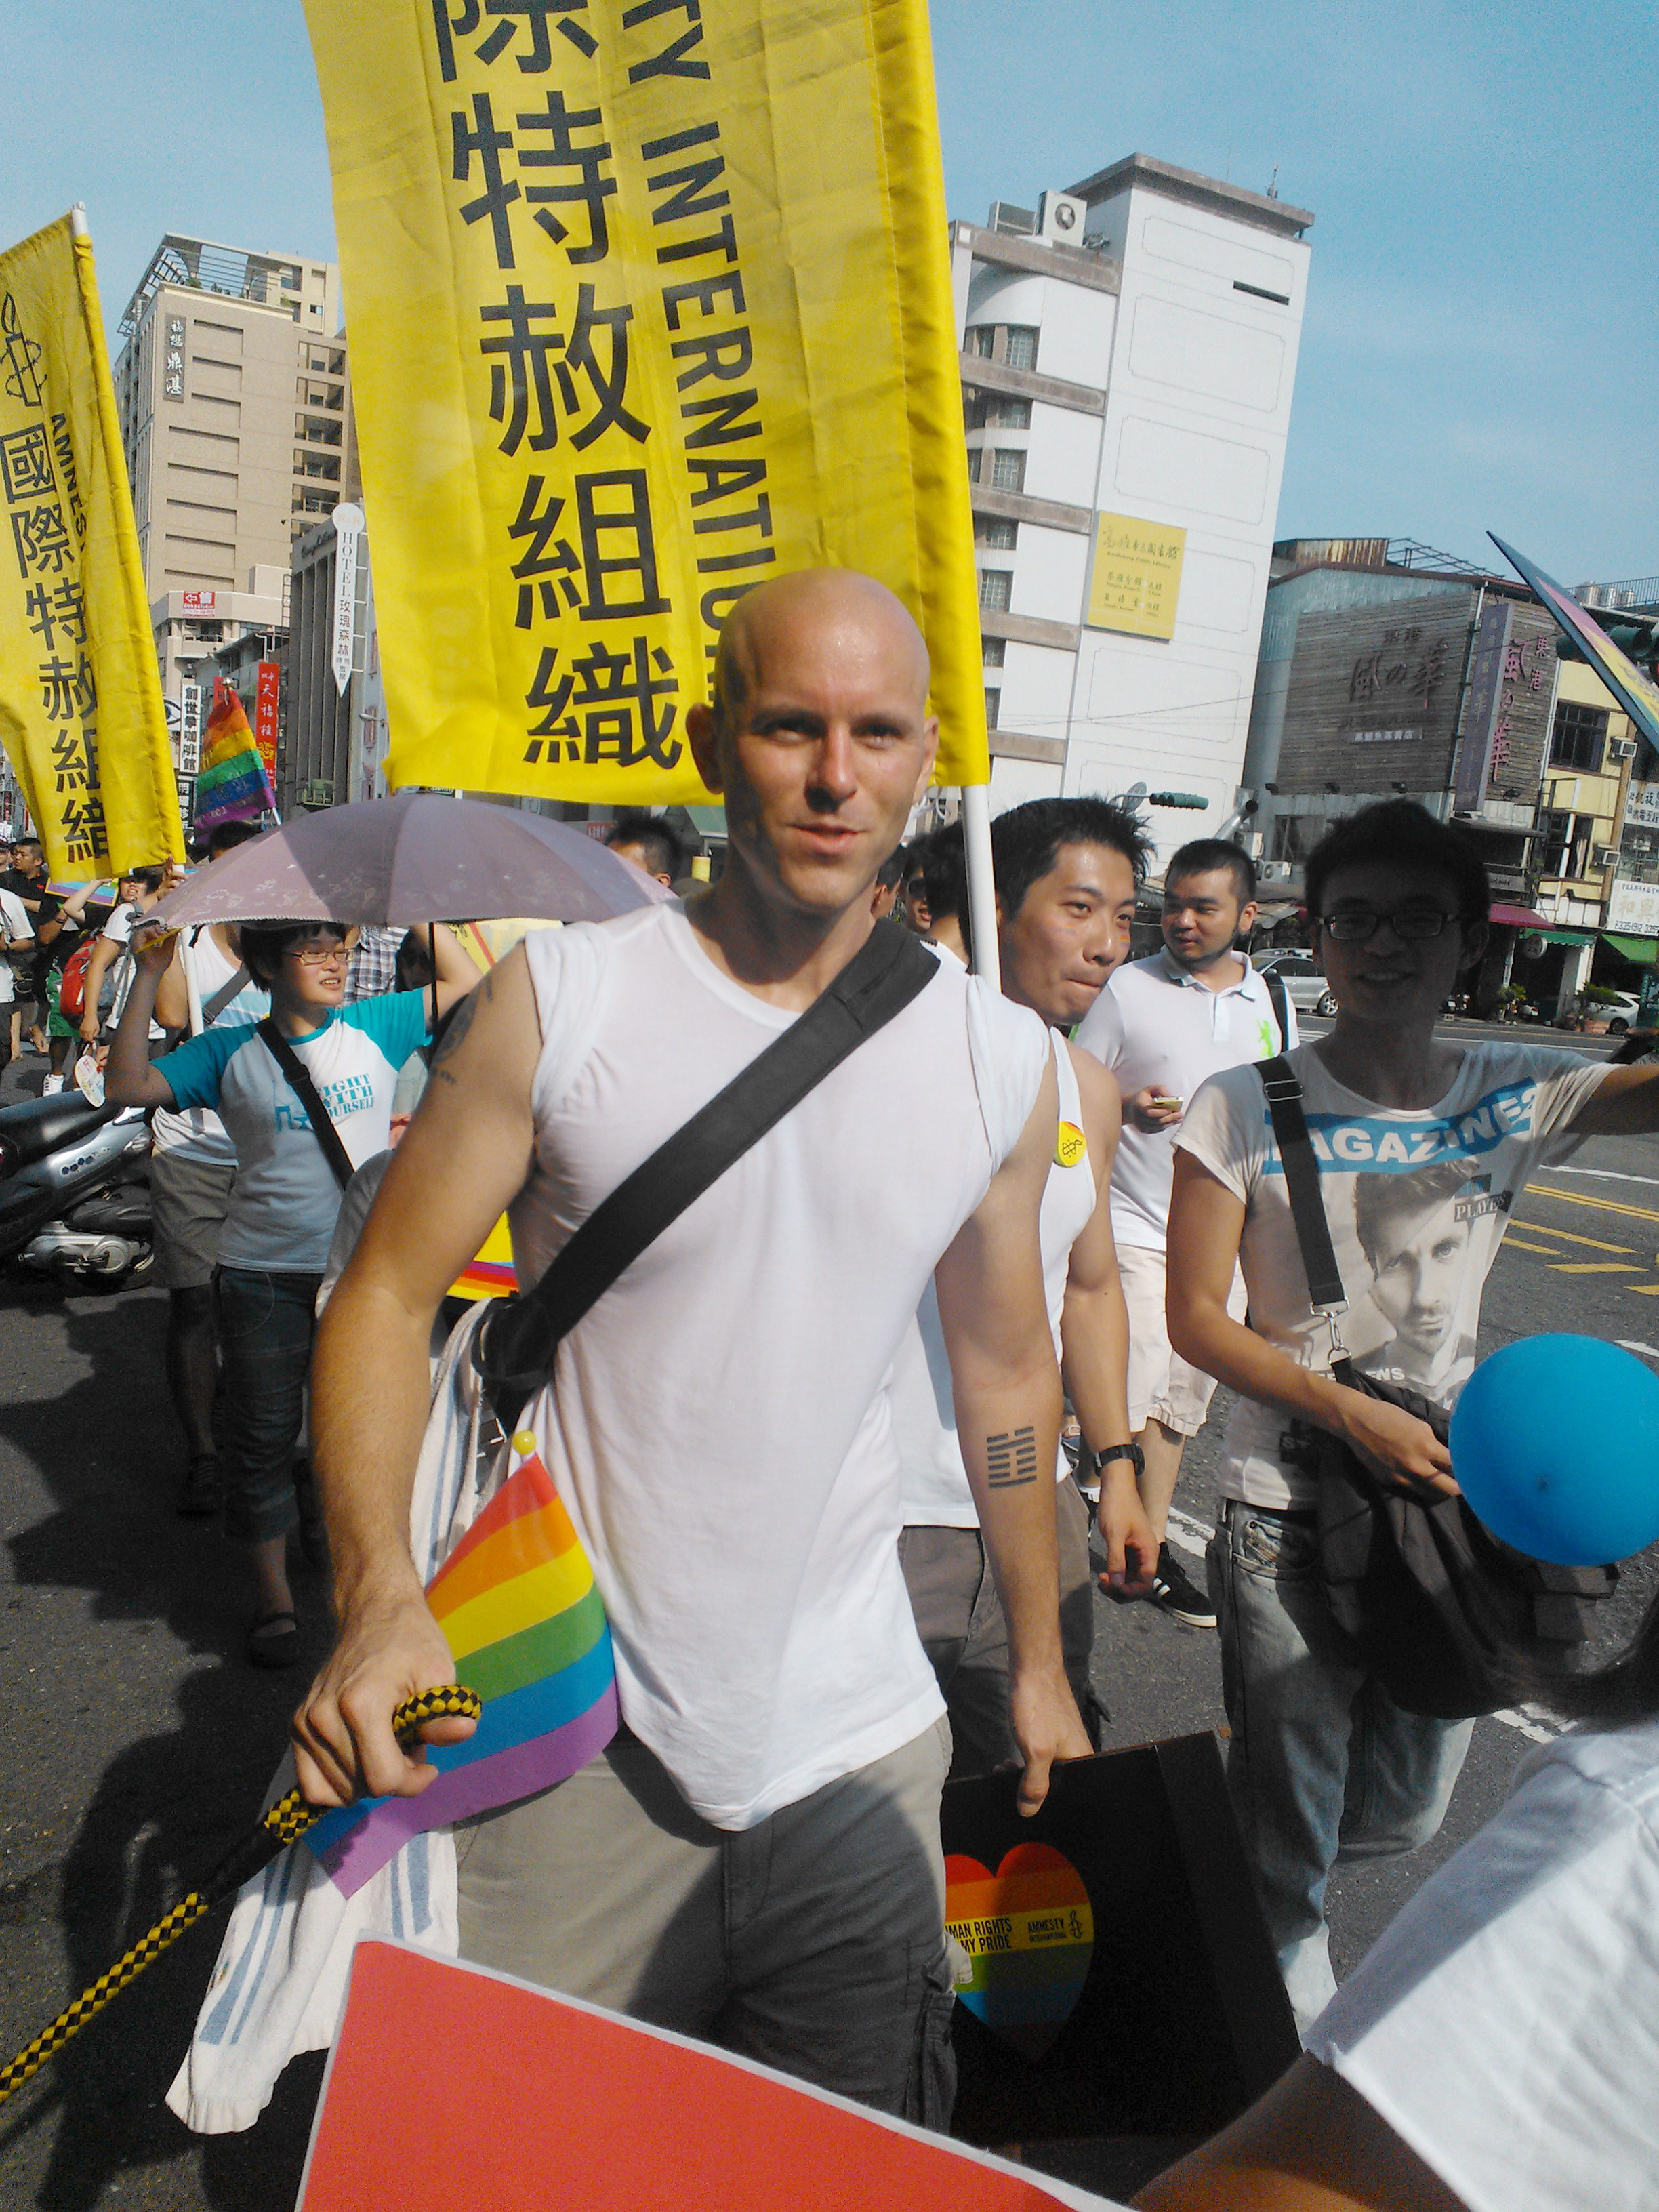 Andrew Bliss marching with Amnesty International in Kaohsiung's gay pride parade.